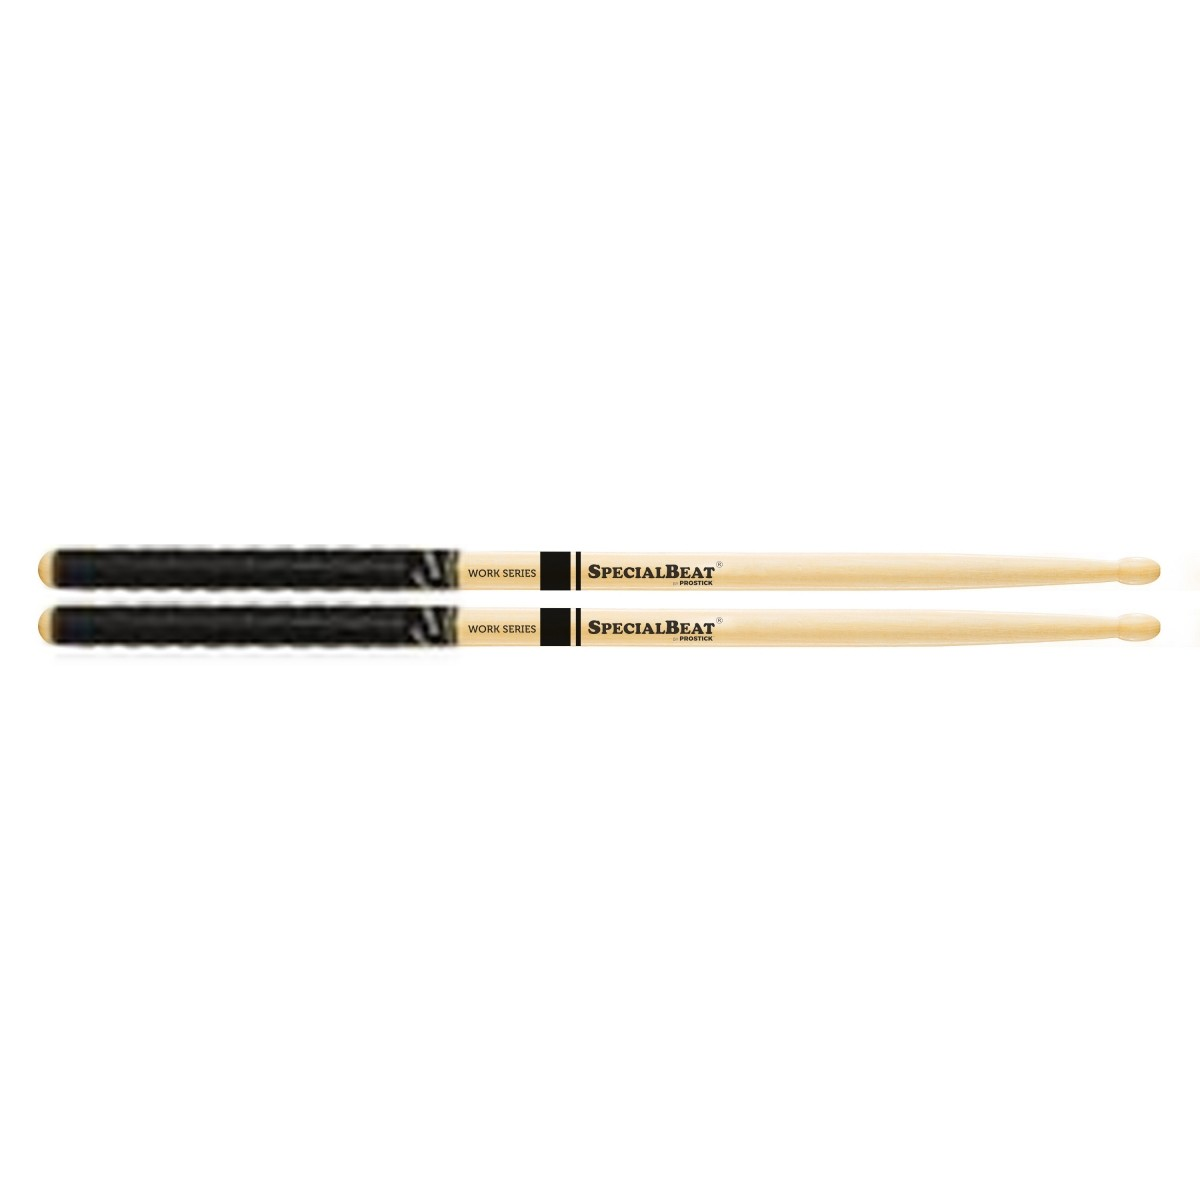 Baqueta Special Beat By Prostick - Work Series 550 GRIP